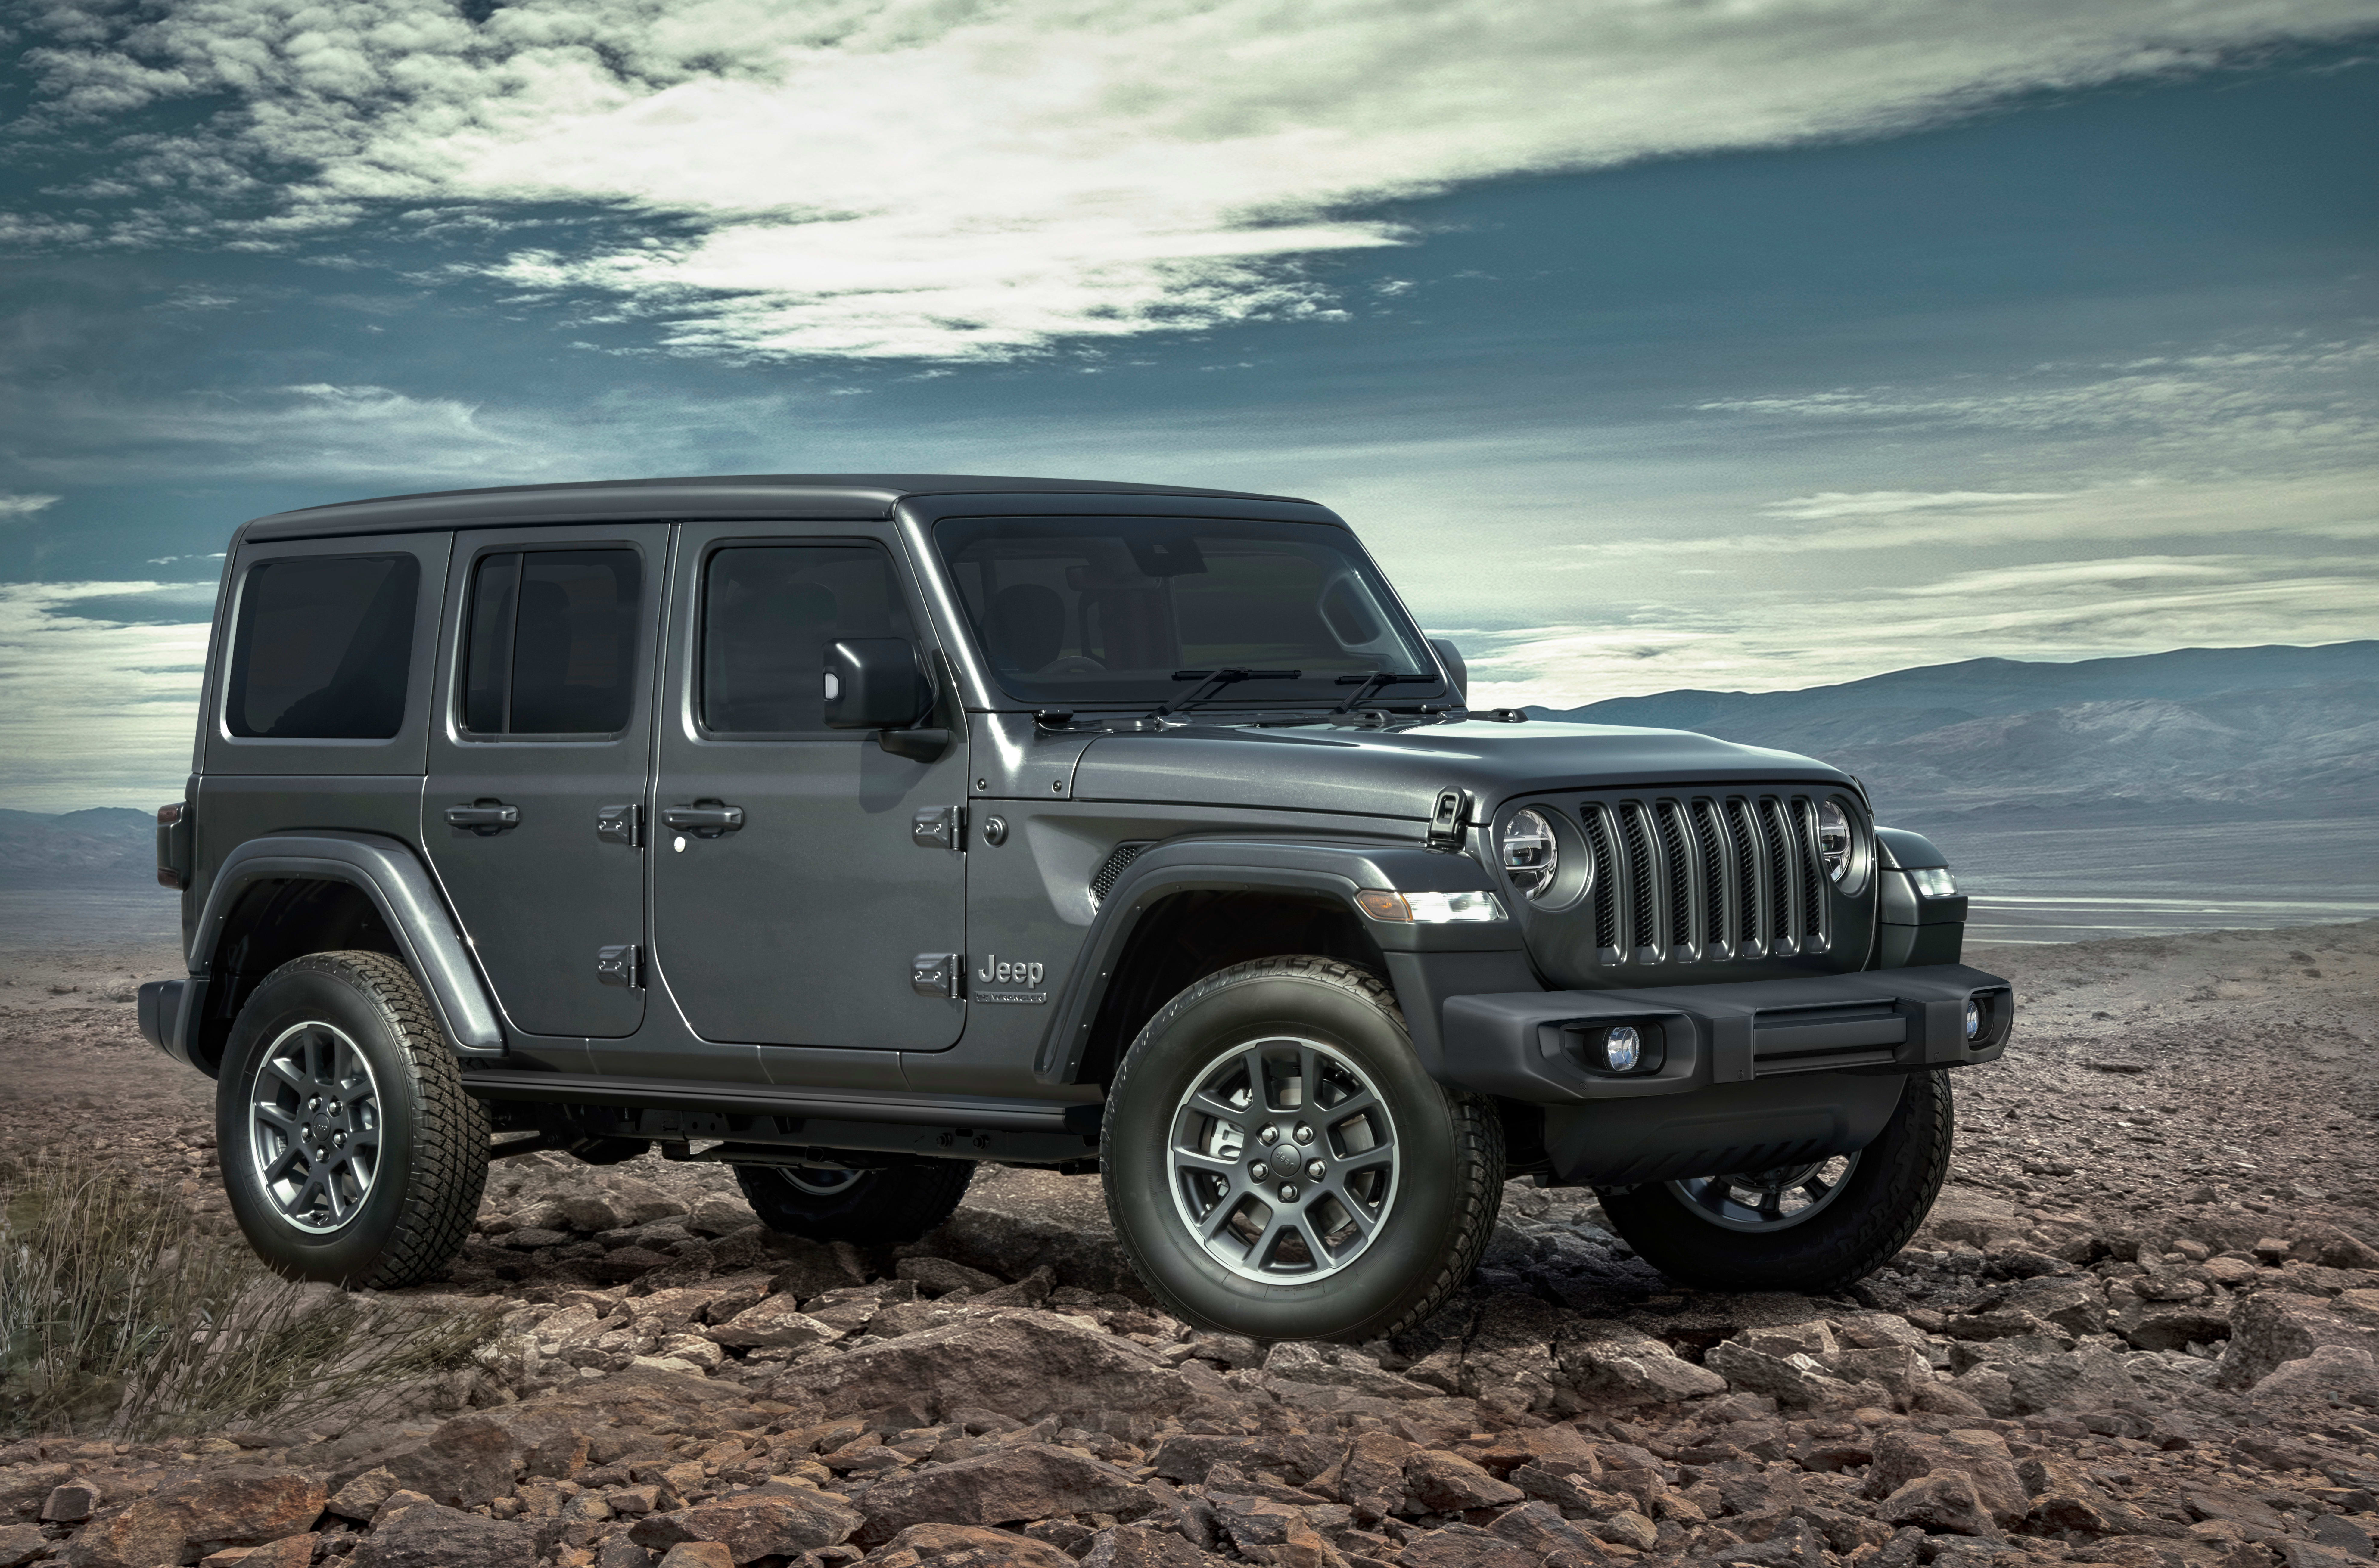 2021 Jeep Wrangler Unlimited 80th Anniversary